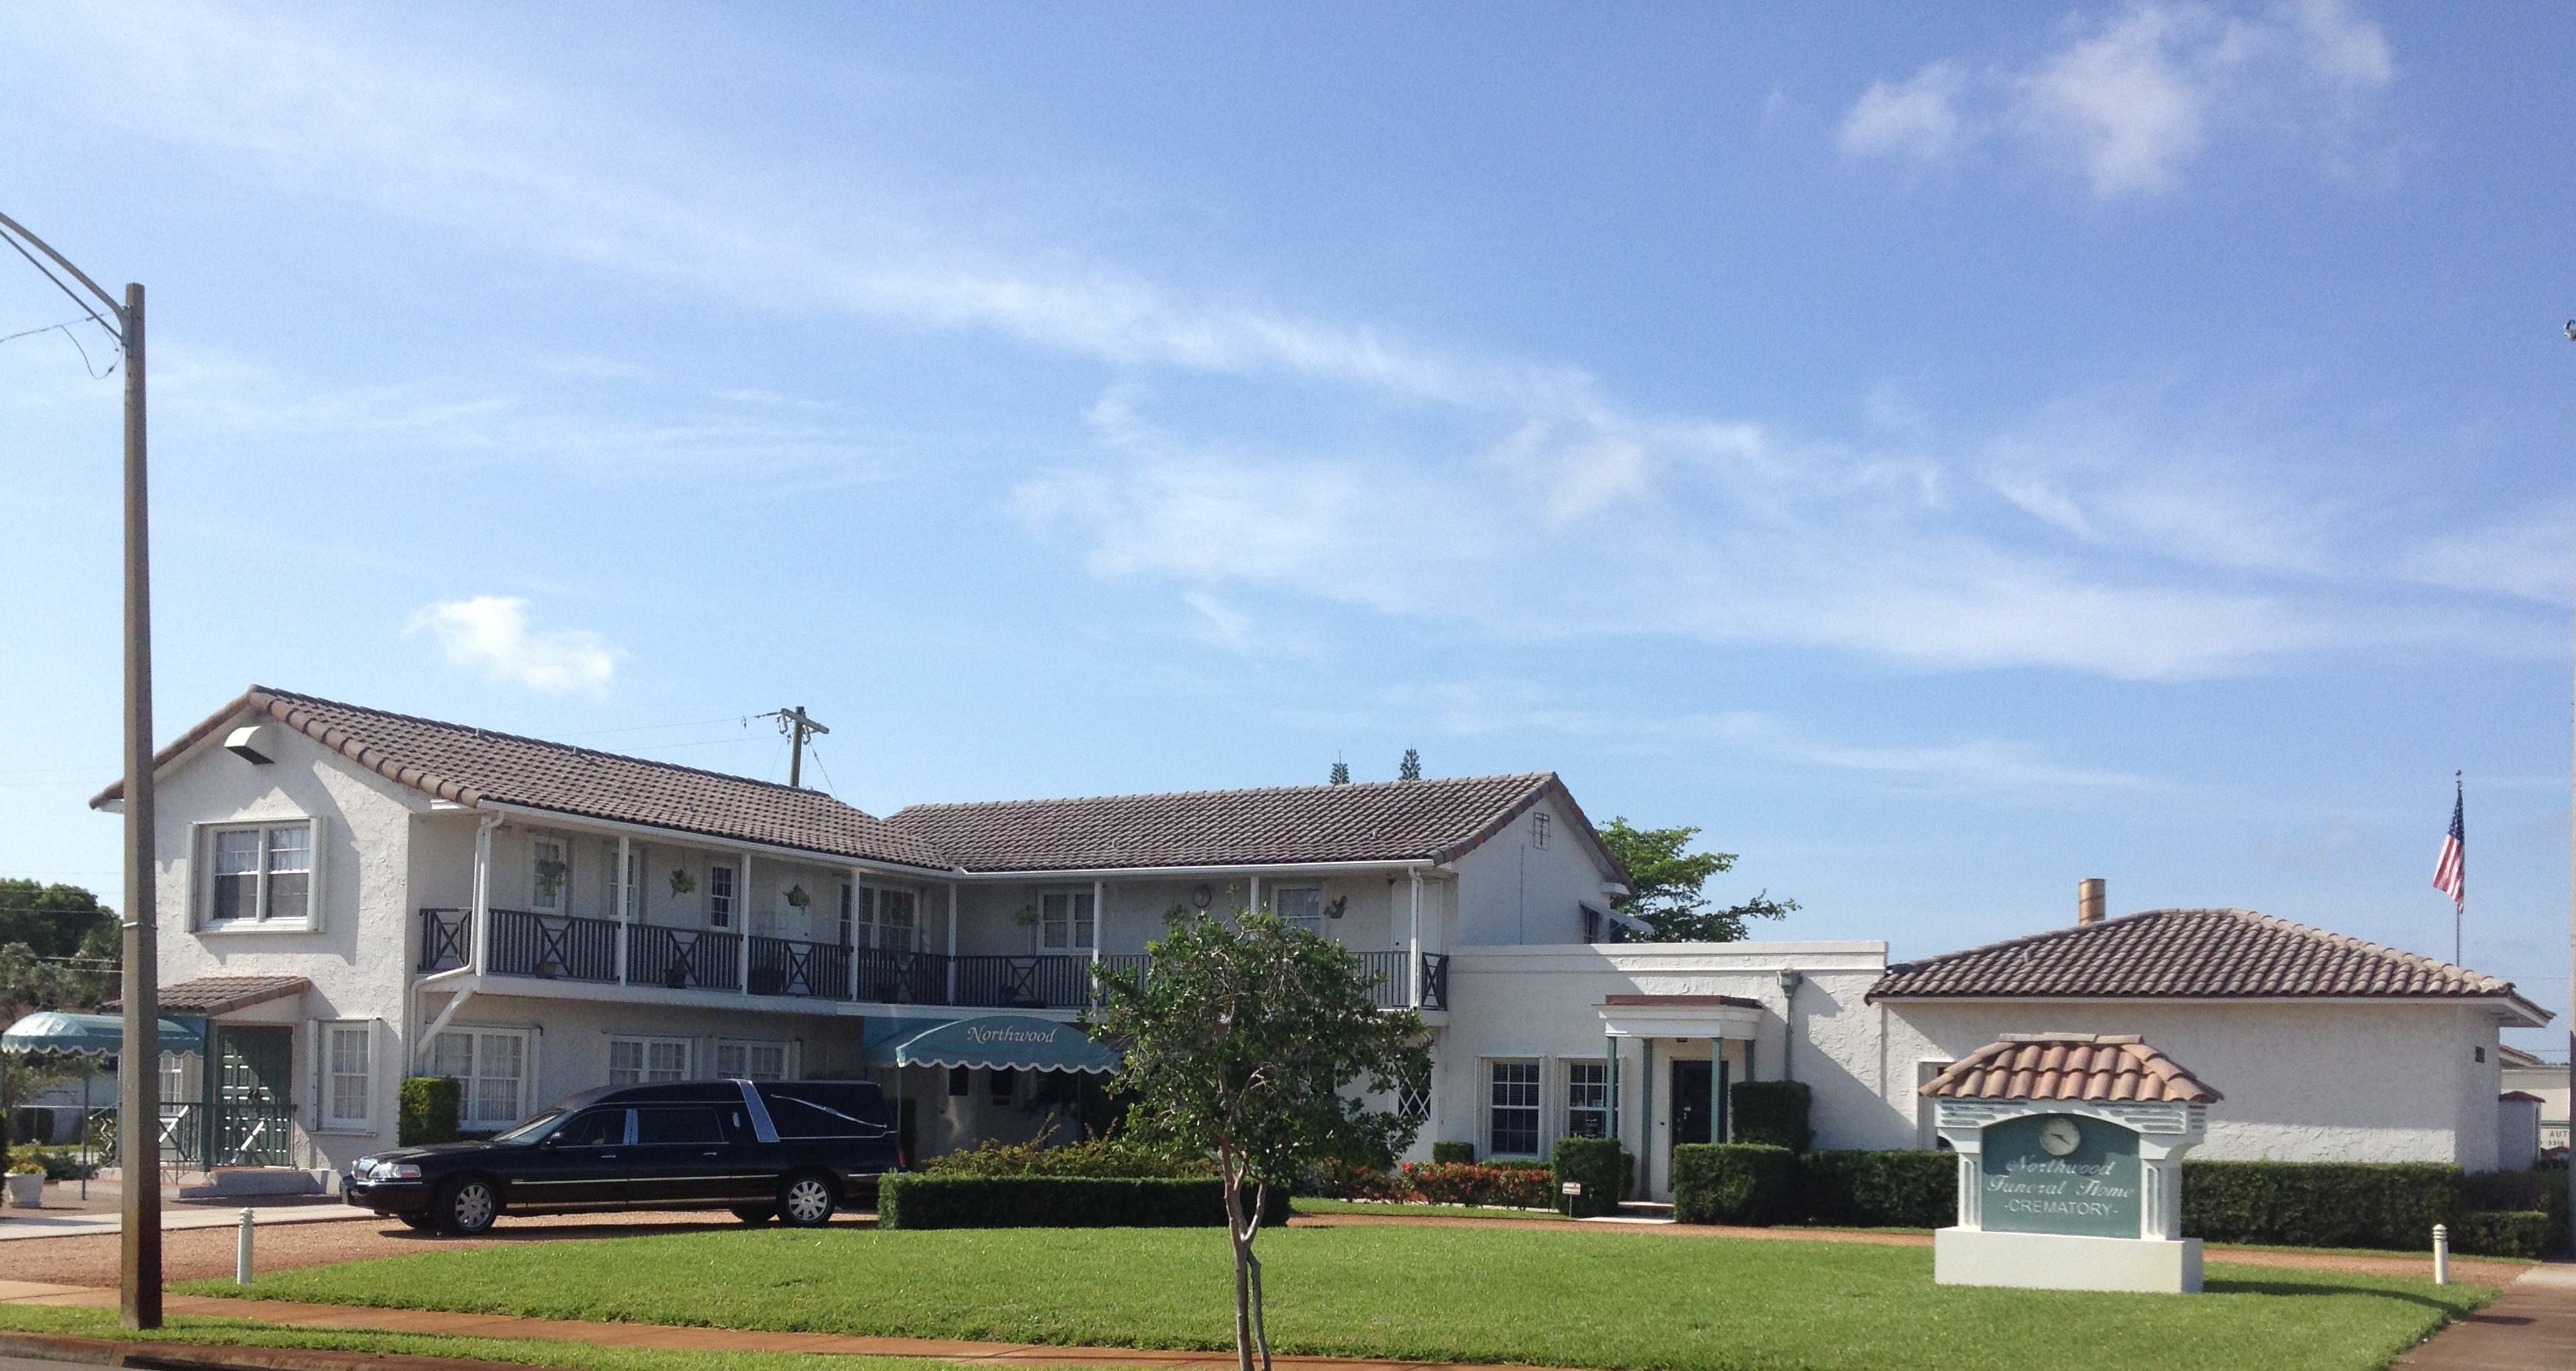 Northwood Funeral Home Crematory West Palm Beach FL YP